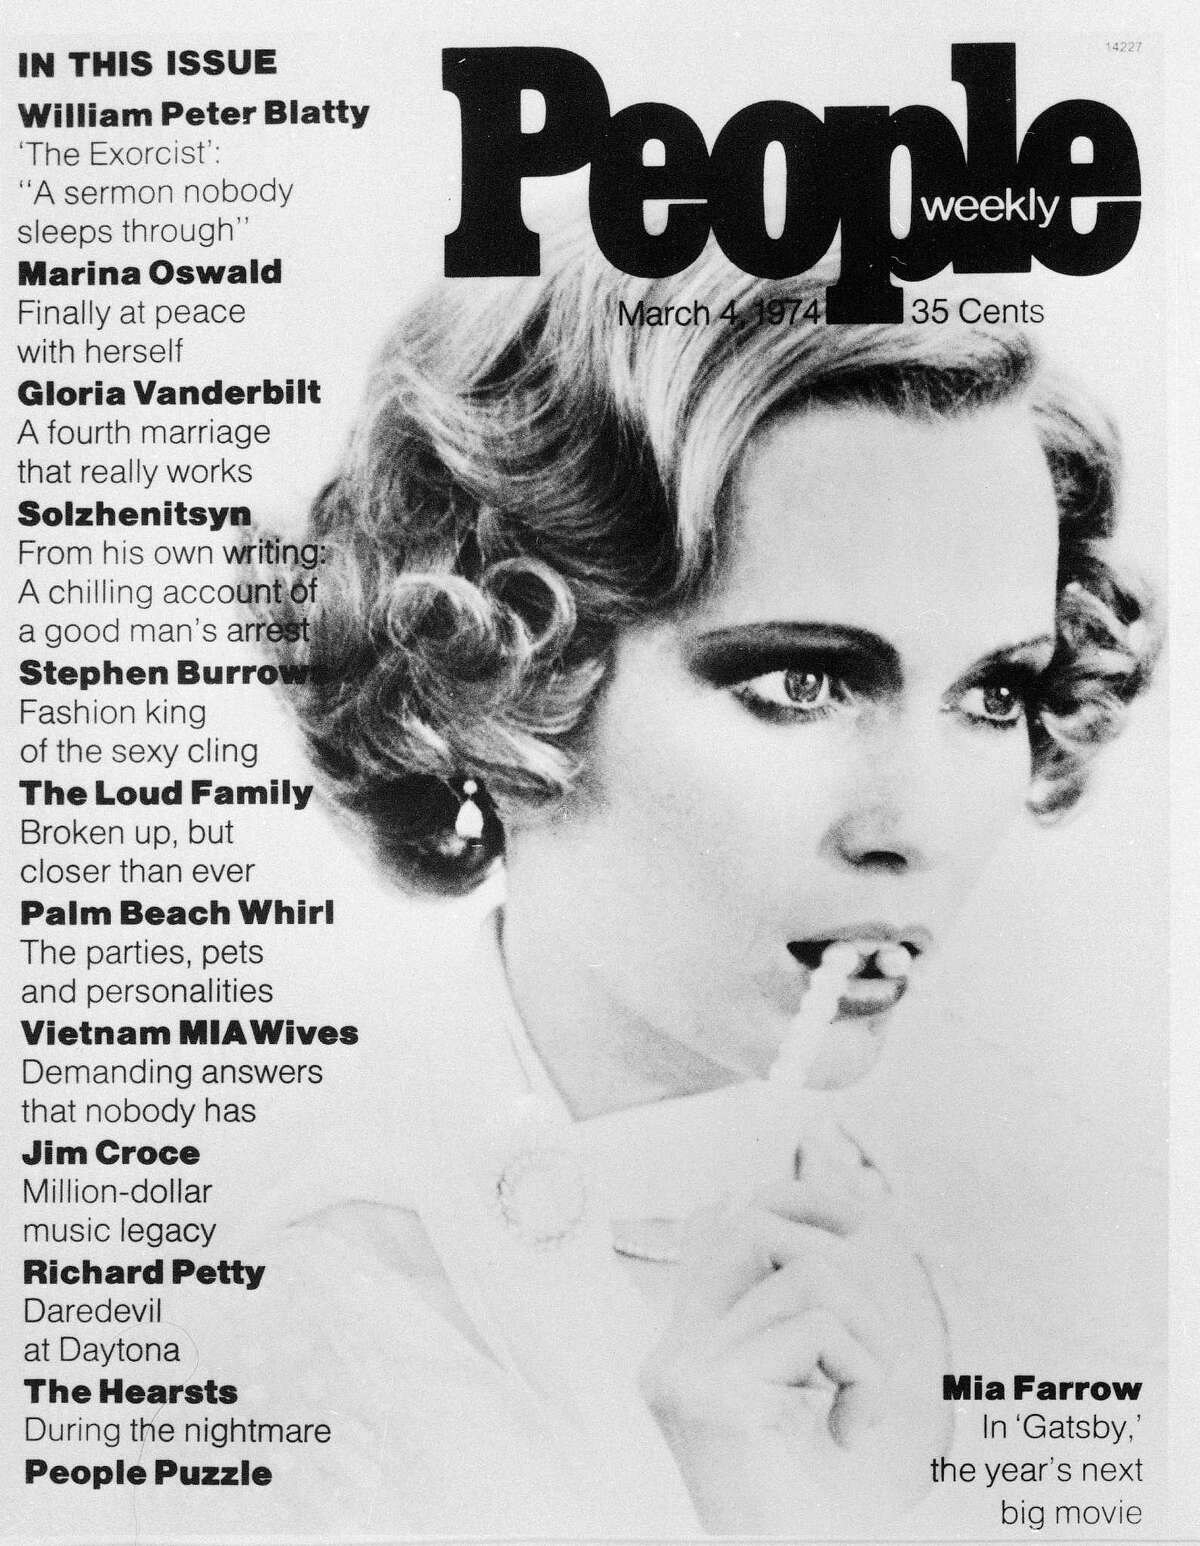 A portrait of Mia Farrow graces the cover of People magazine's first issue, March 4, 1974.